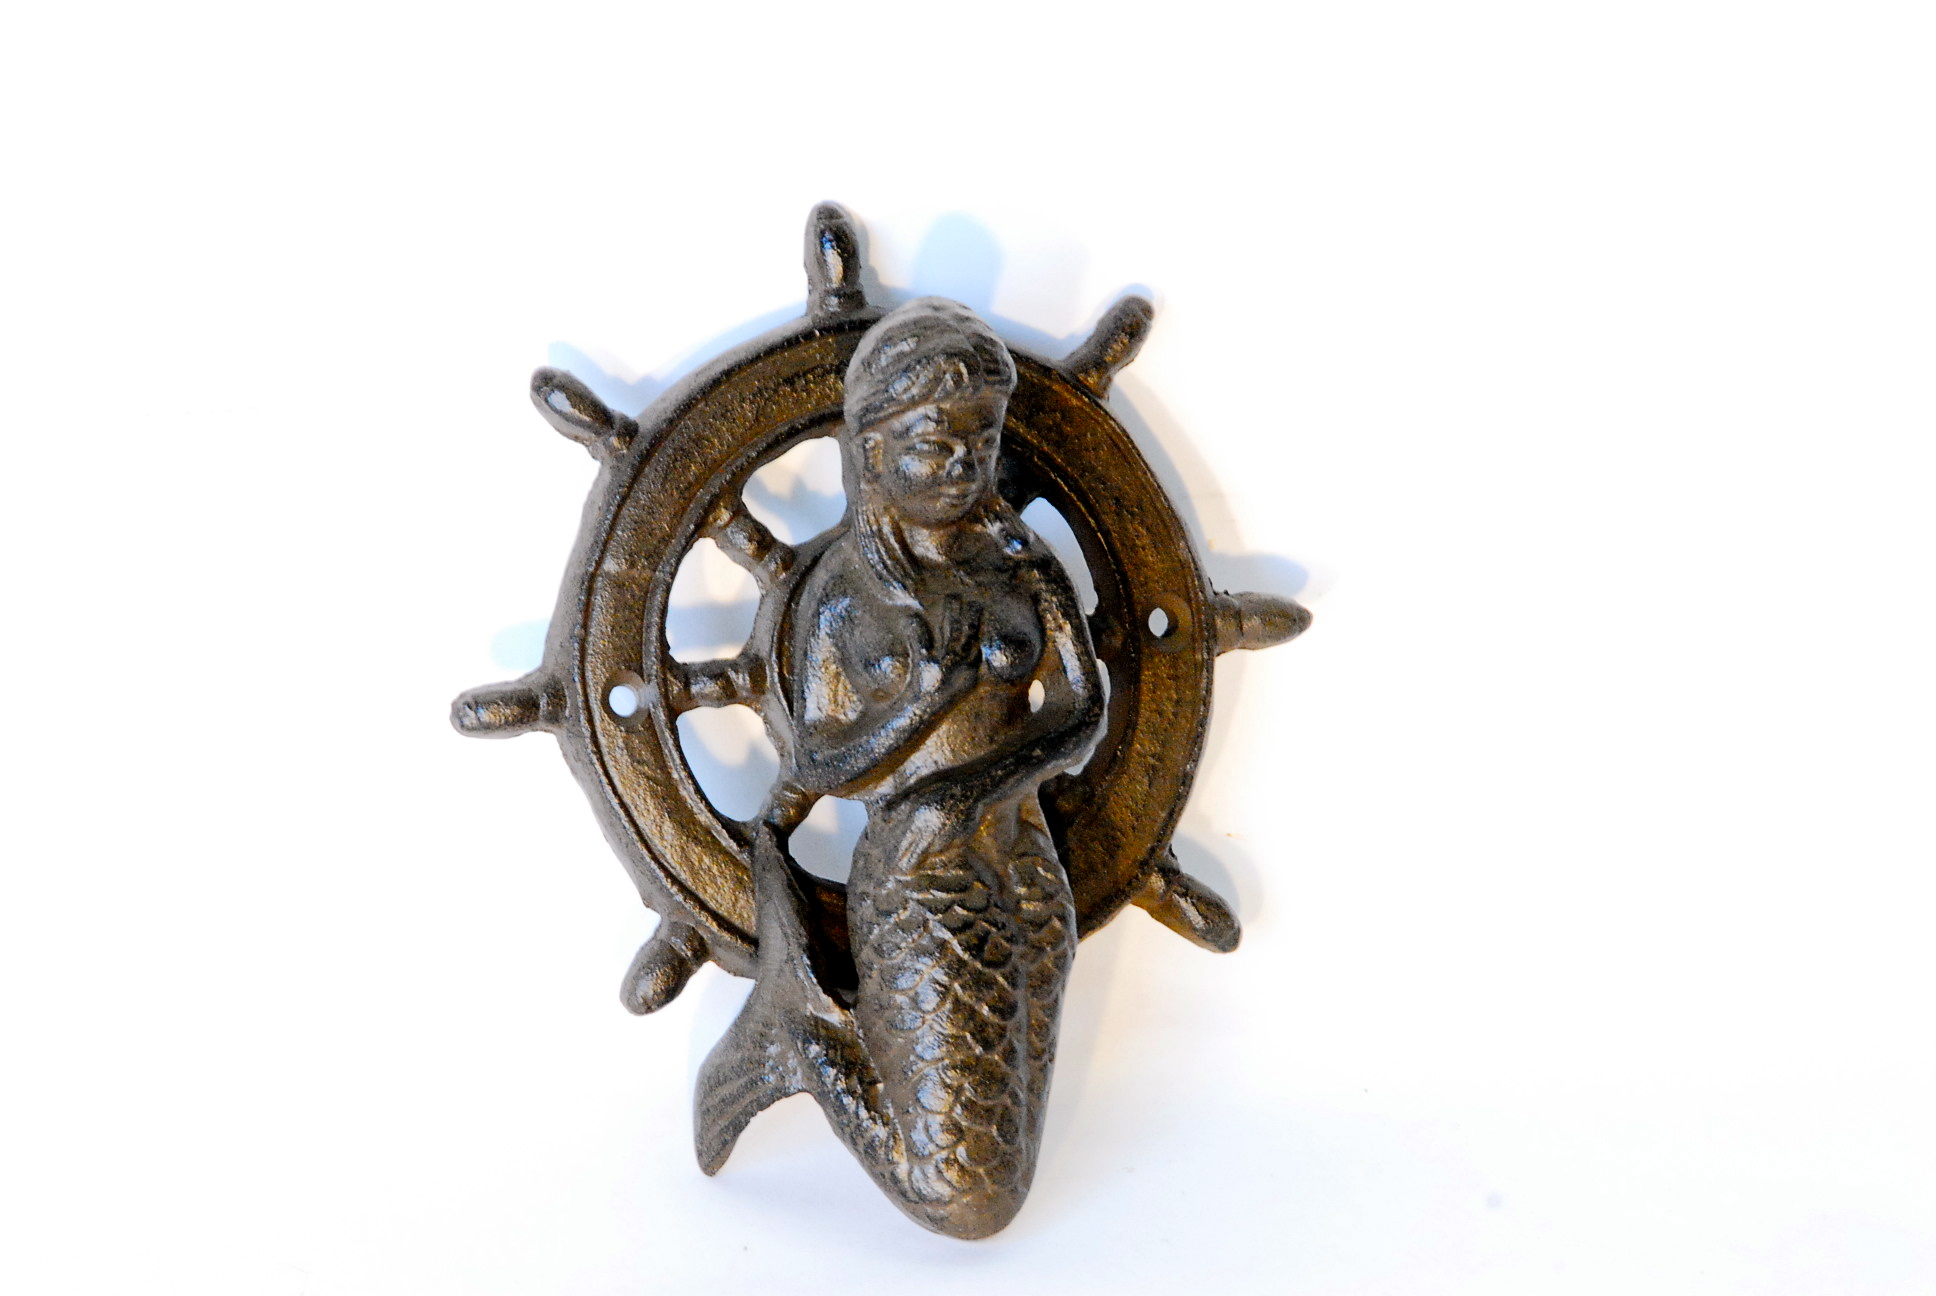 Mermaid ships wheel door knocker cast iron 6 x 5 4 in a box macgregor imports ltd - Mermaid door knocker ...